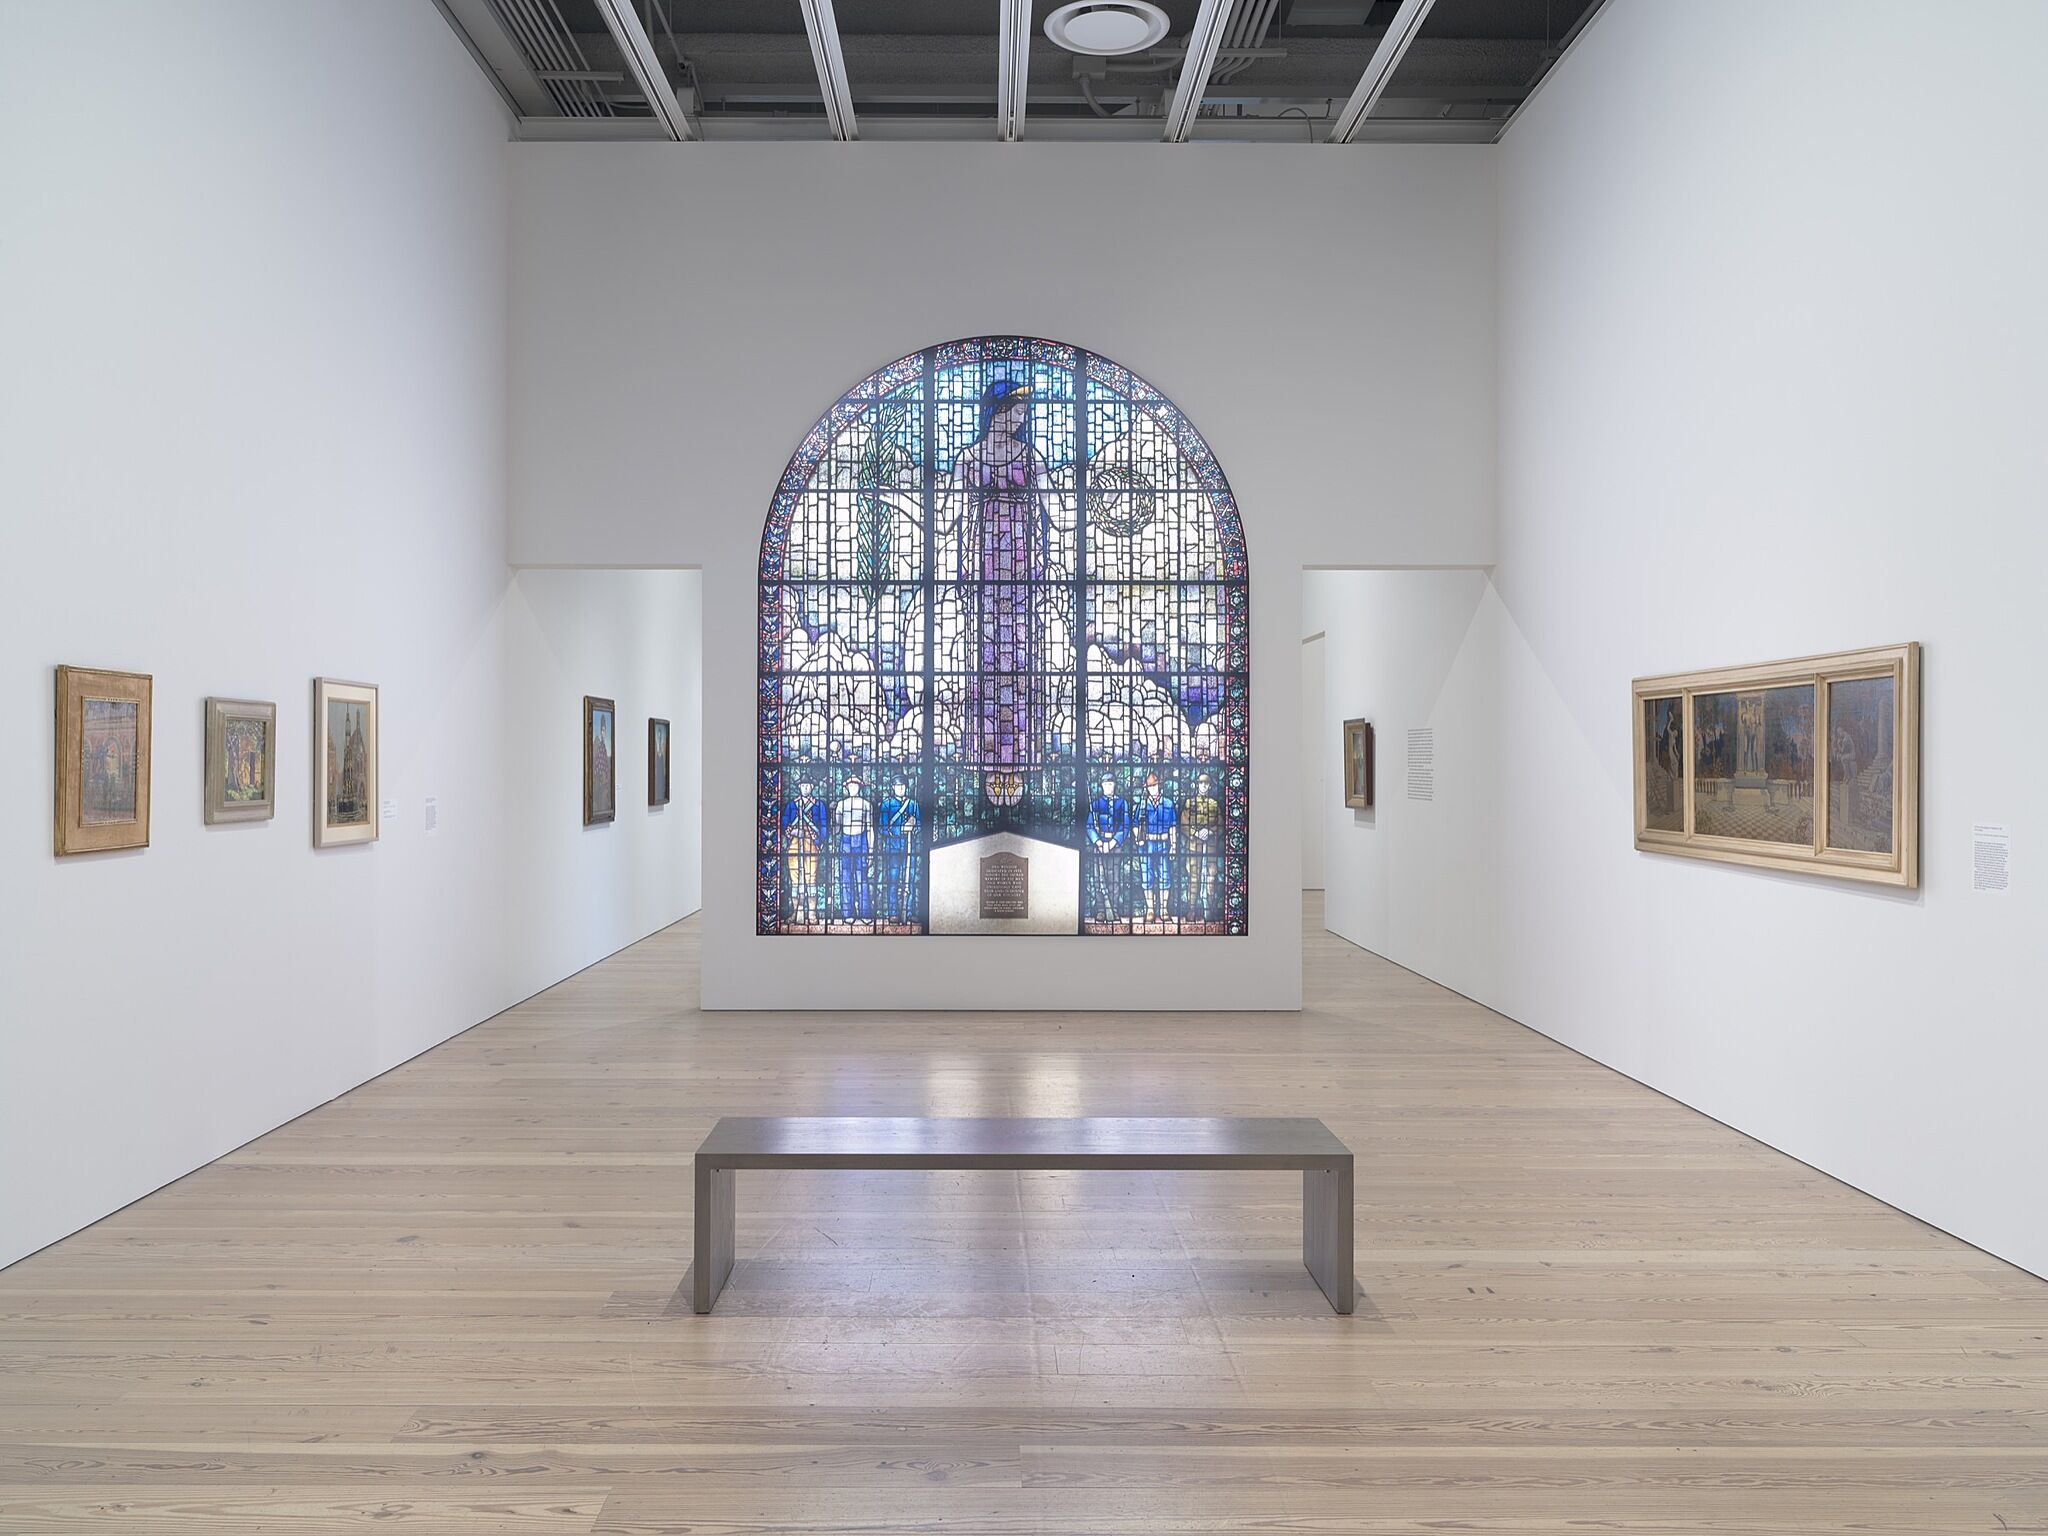 A gallery with a large stained glass window and various paintings.